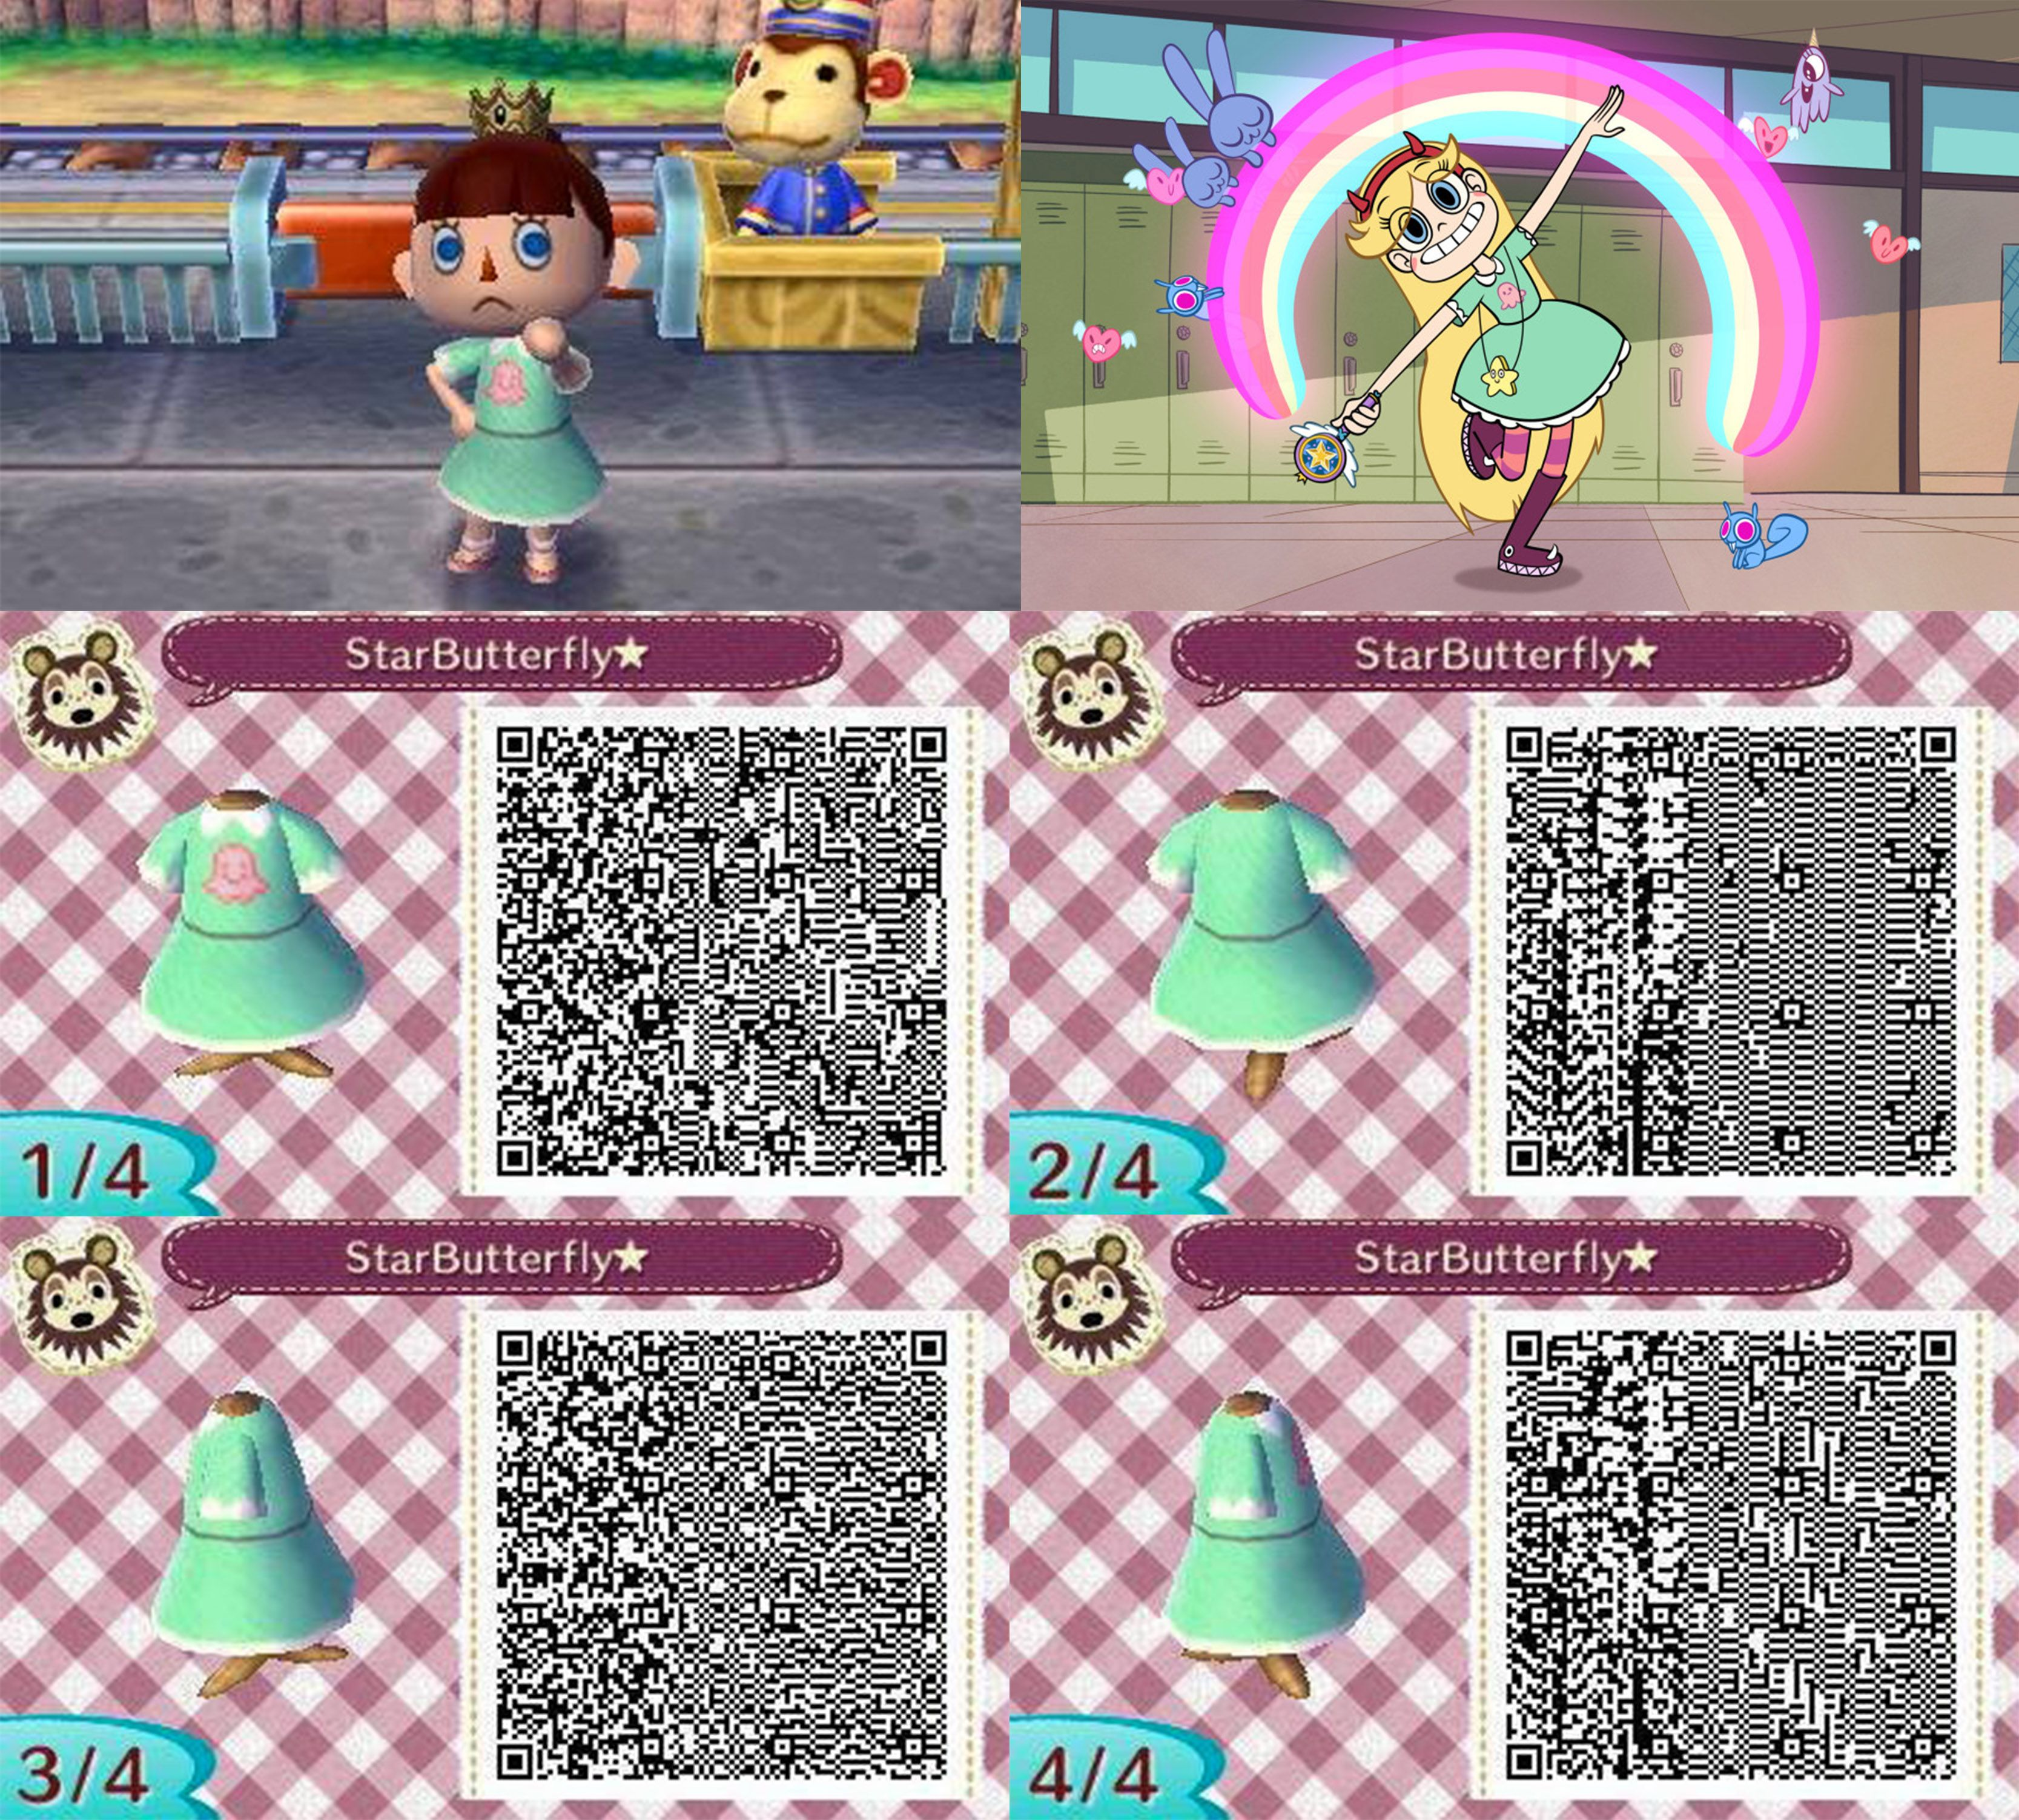 Leather jacket qr code new leaf - Star Butterfly Star Vs The Forces Of Evil Qr Code Design For Animal Crossing